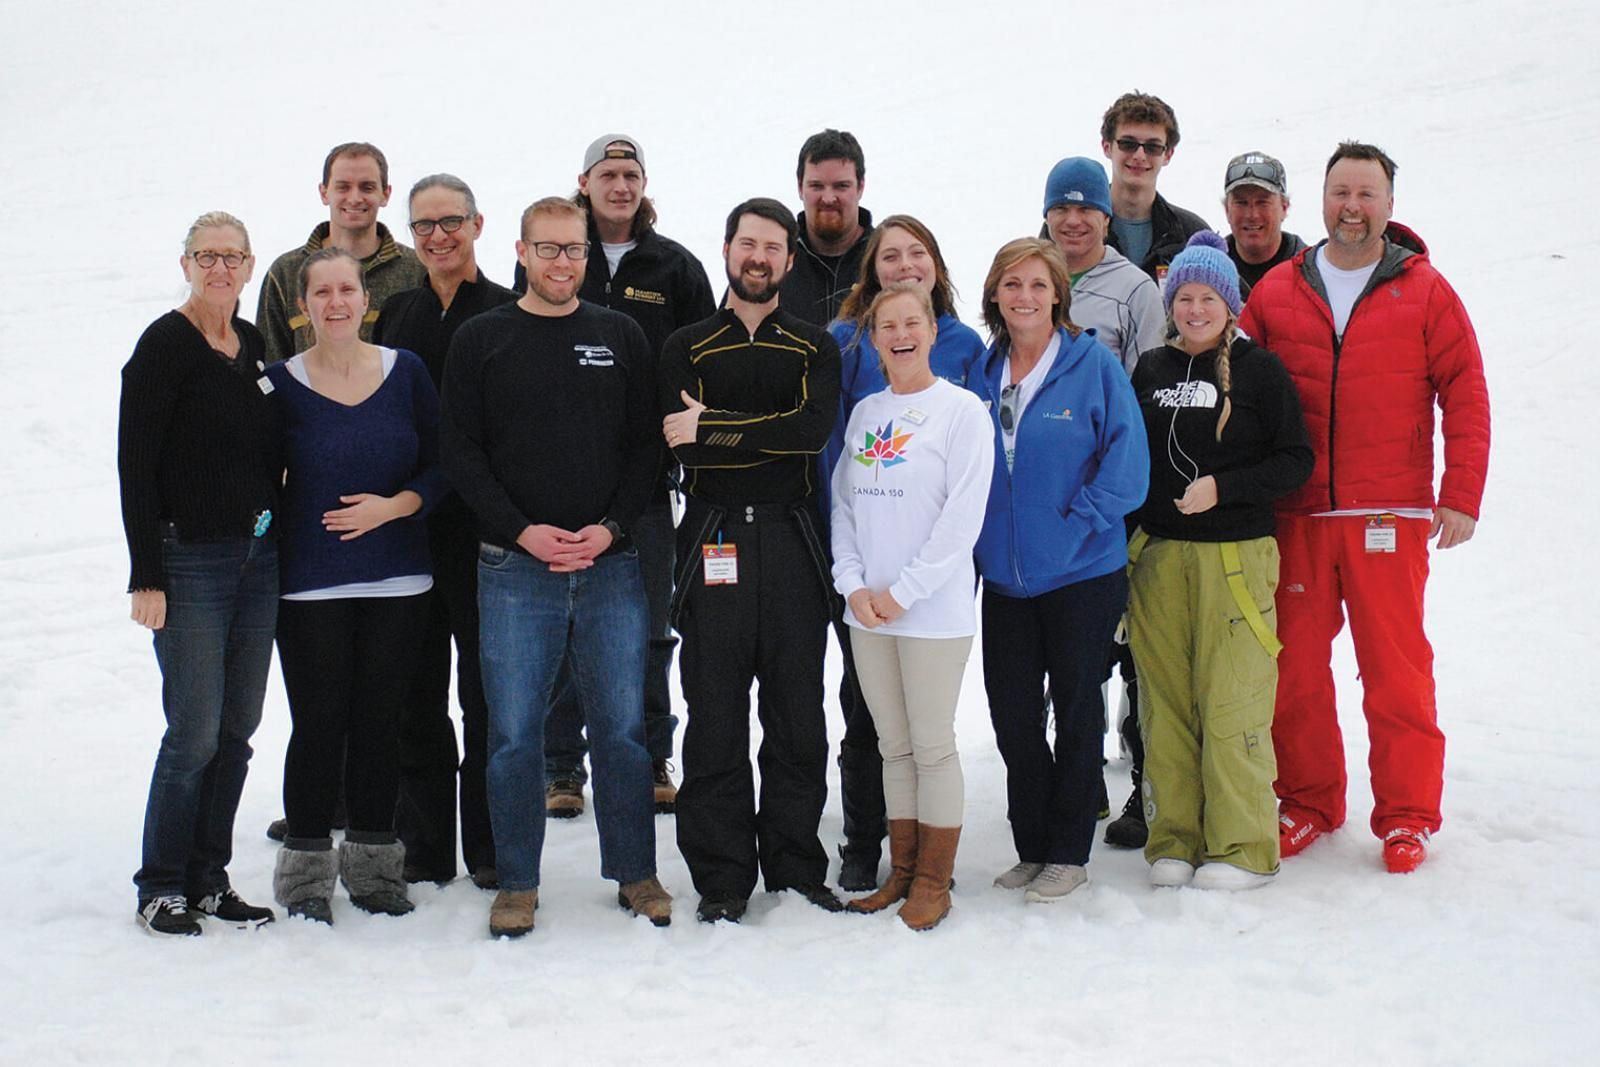 LO members enjoyed above average temperatures on the ski slopes this year.